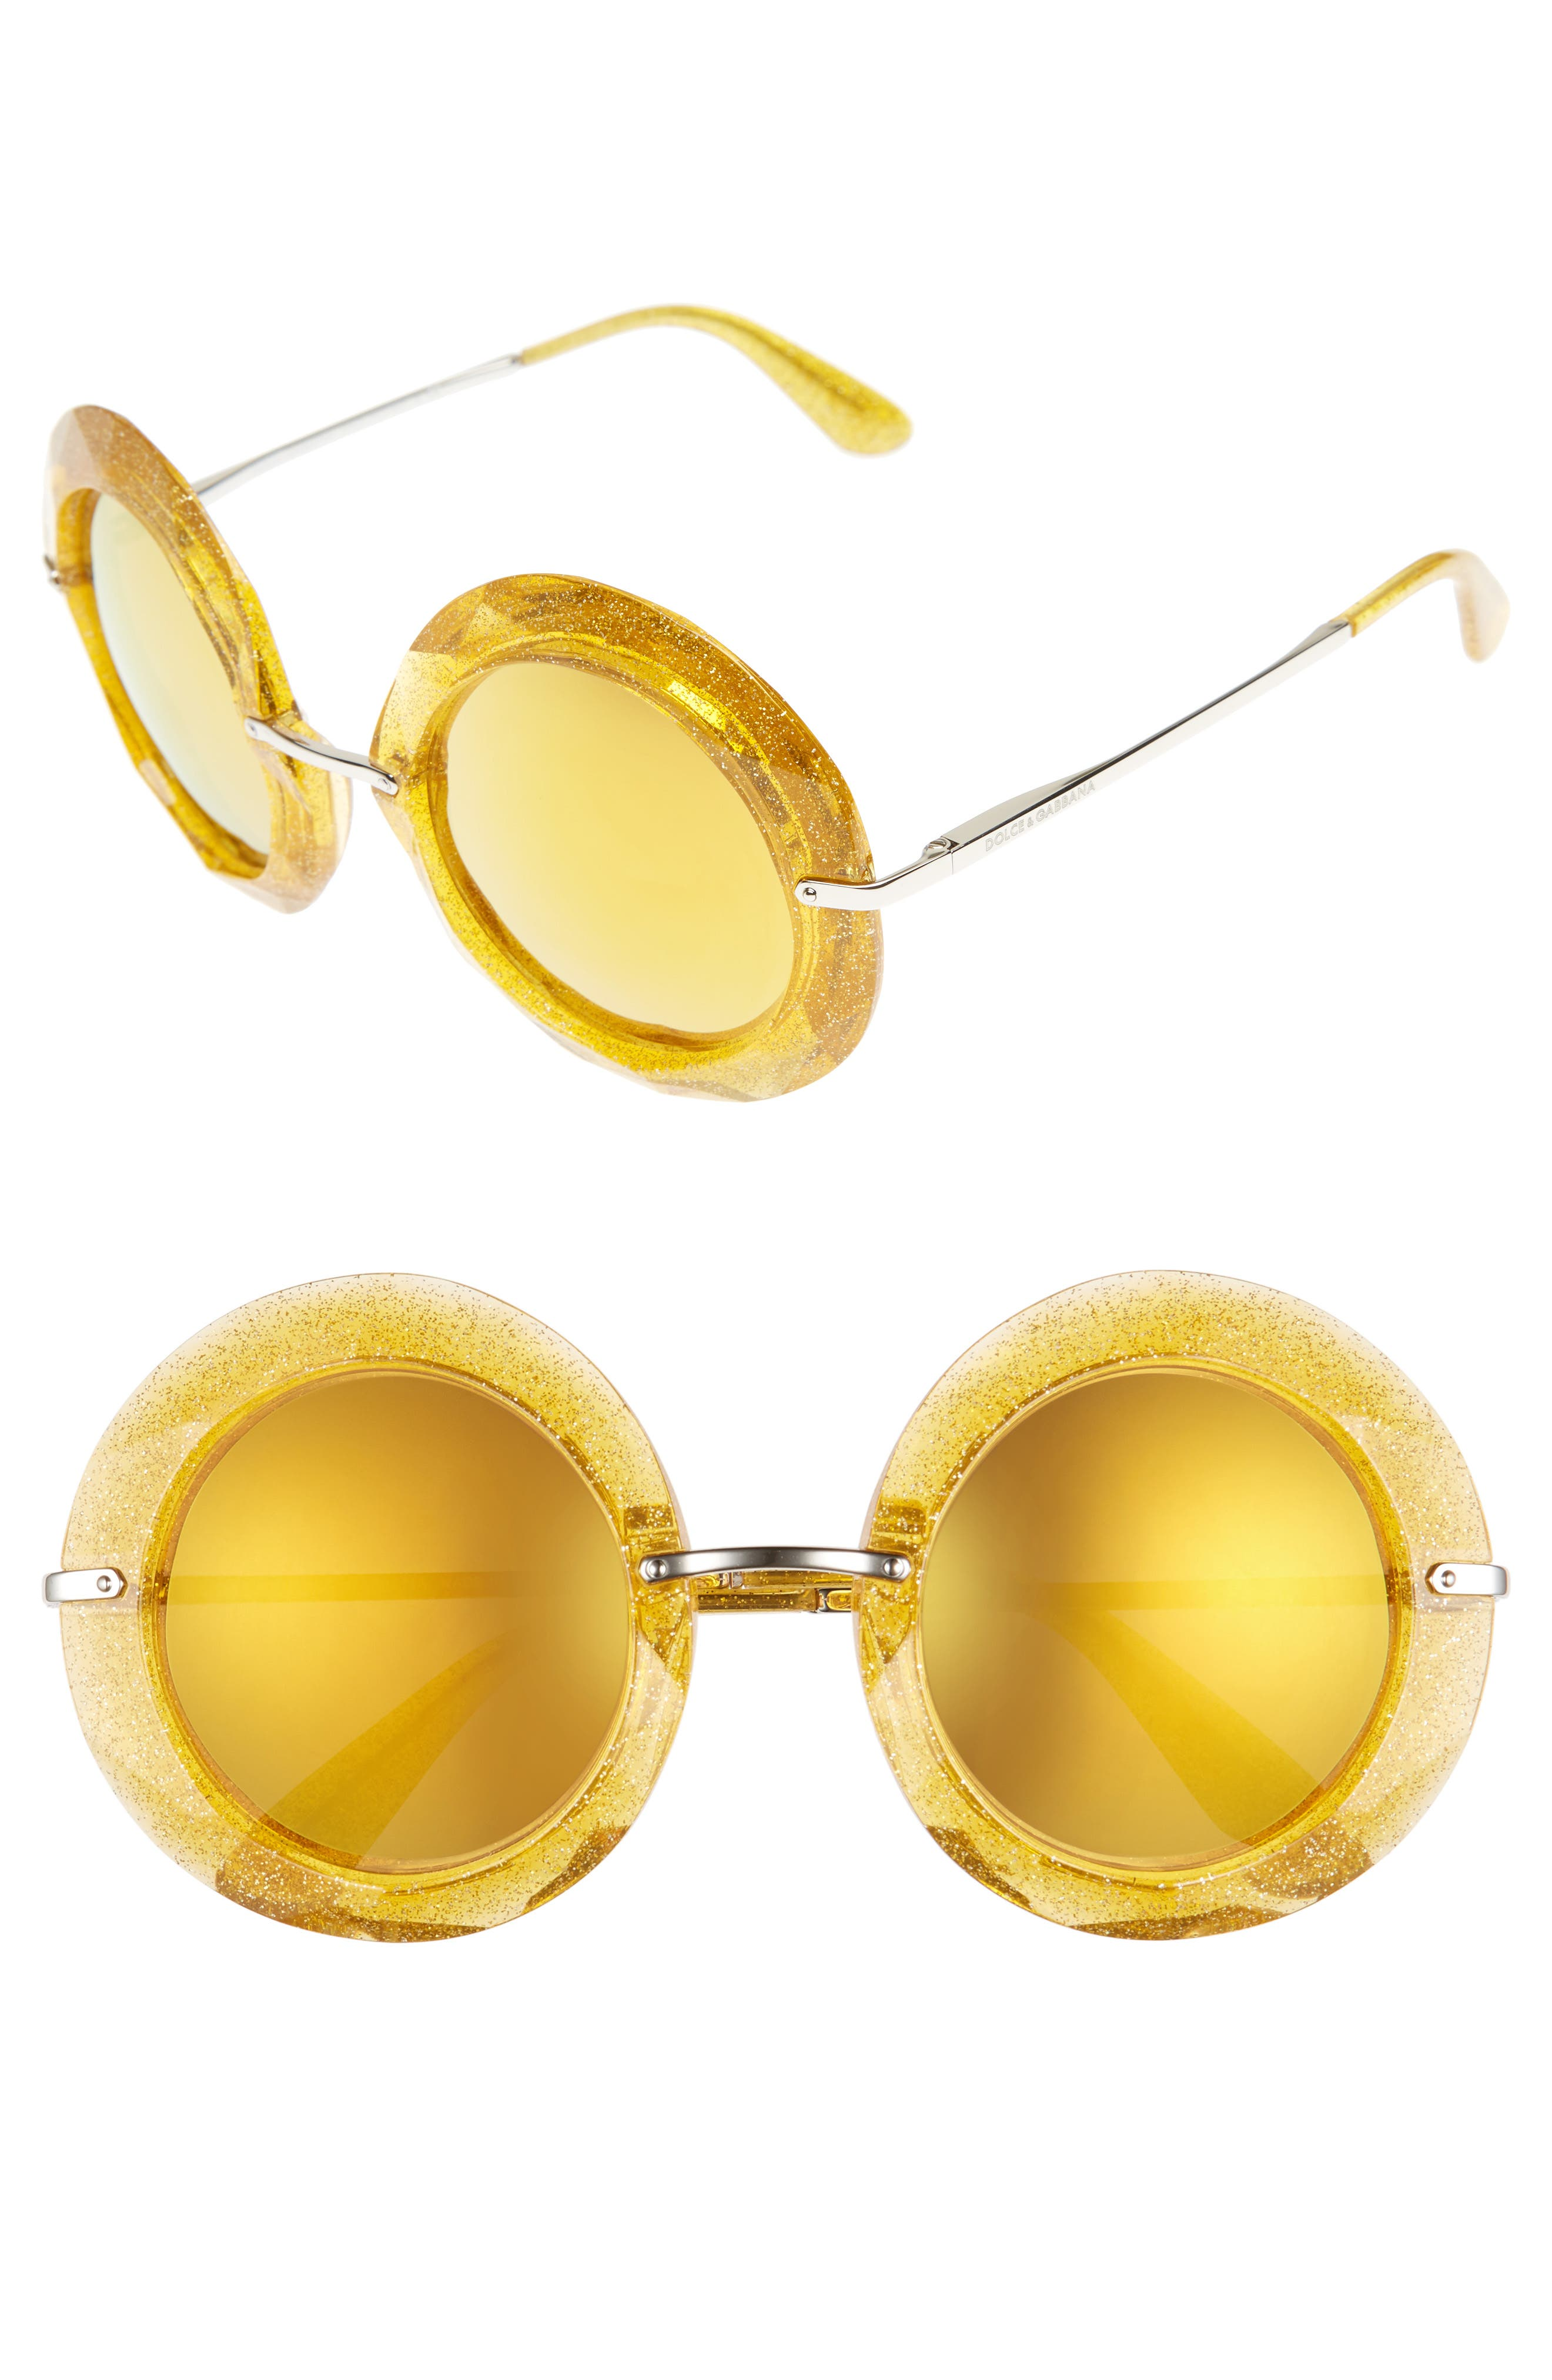 Alternate Image 1 Selected - Dolce&Gabbana 50mm Round Sunglasses